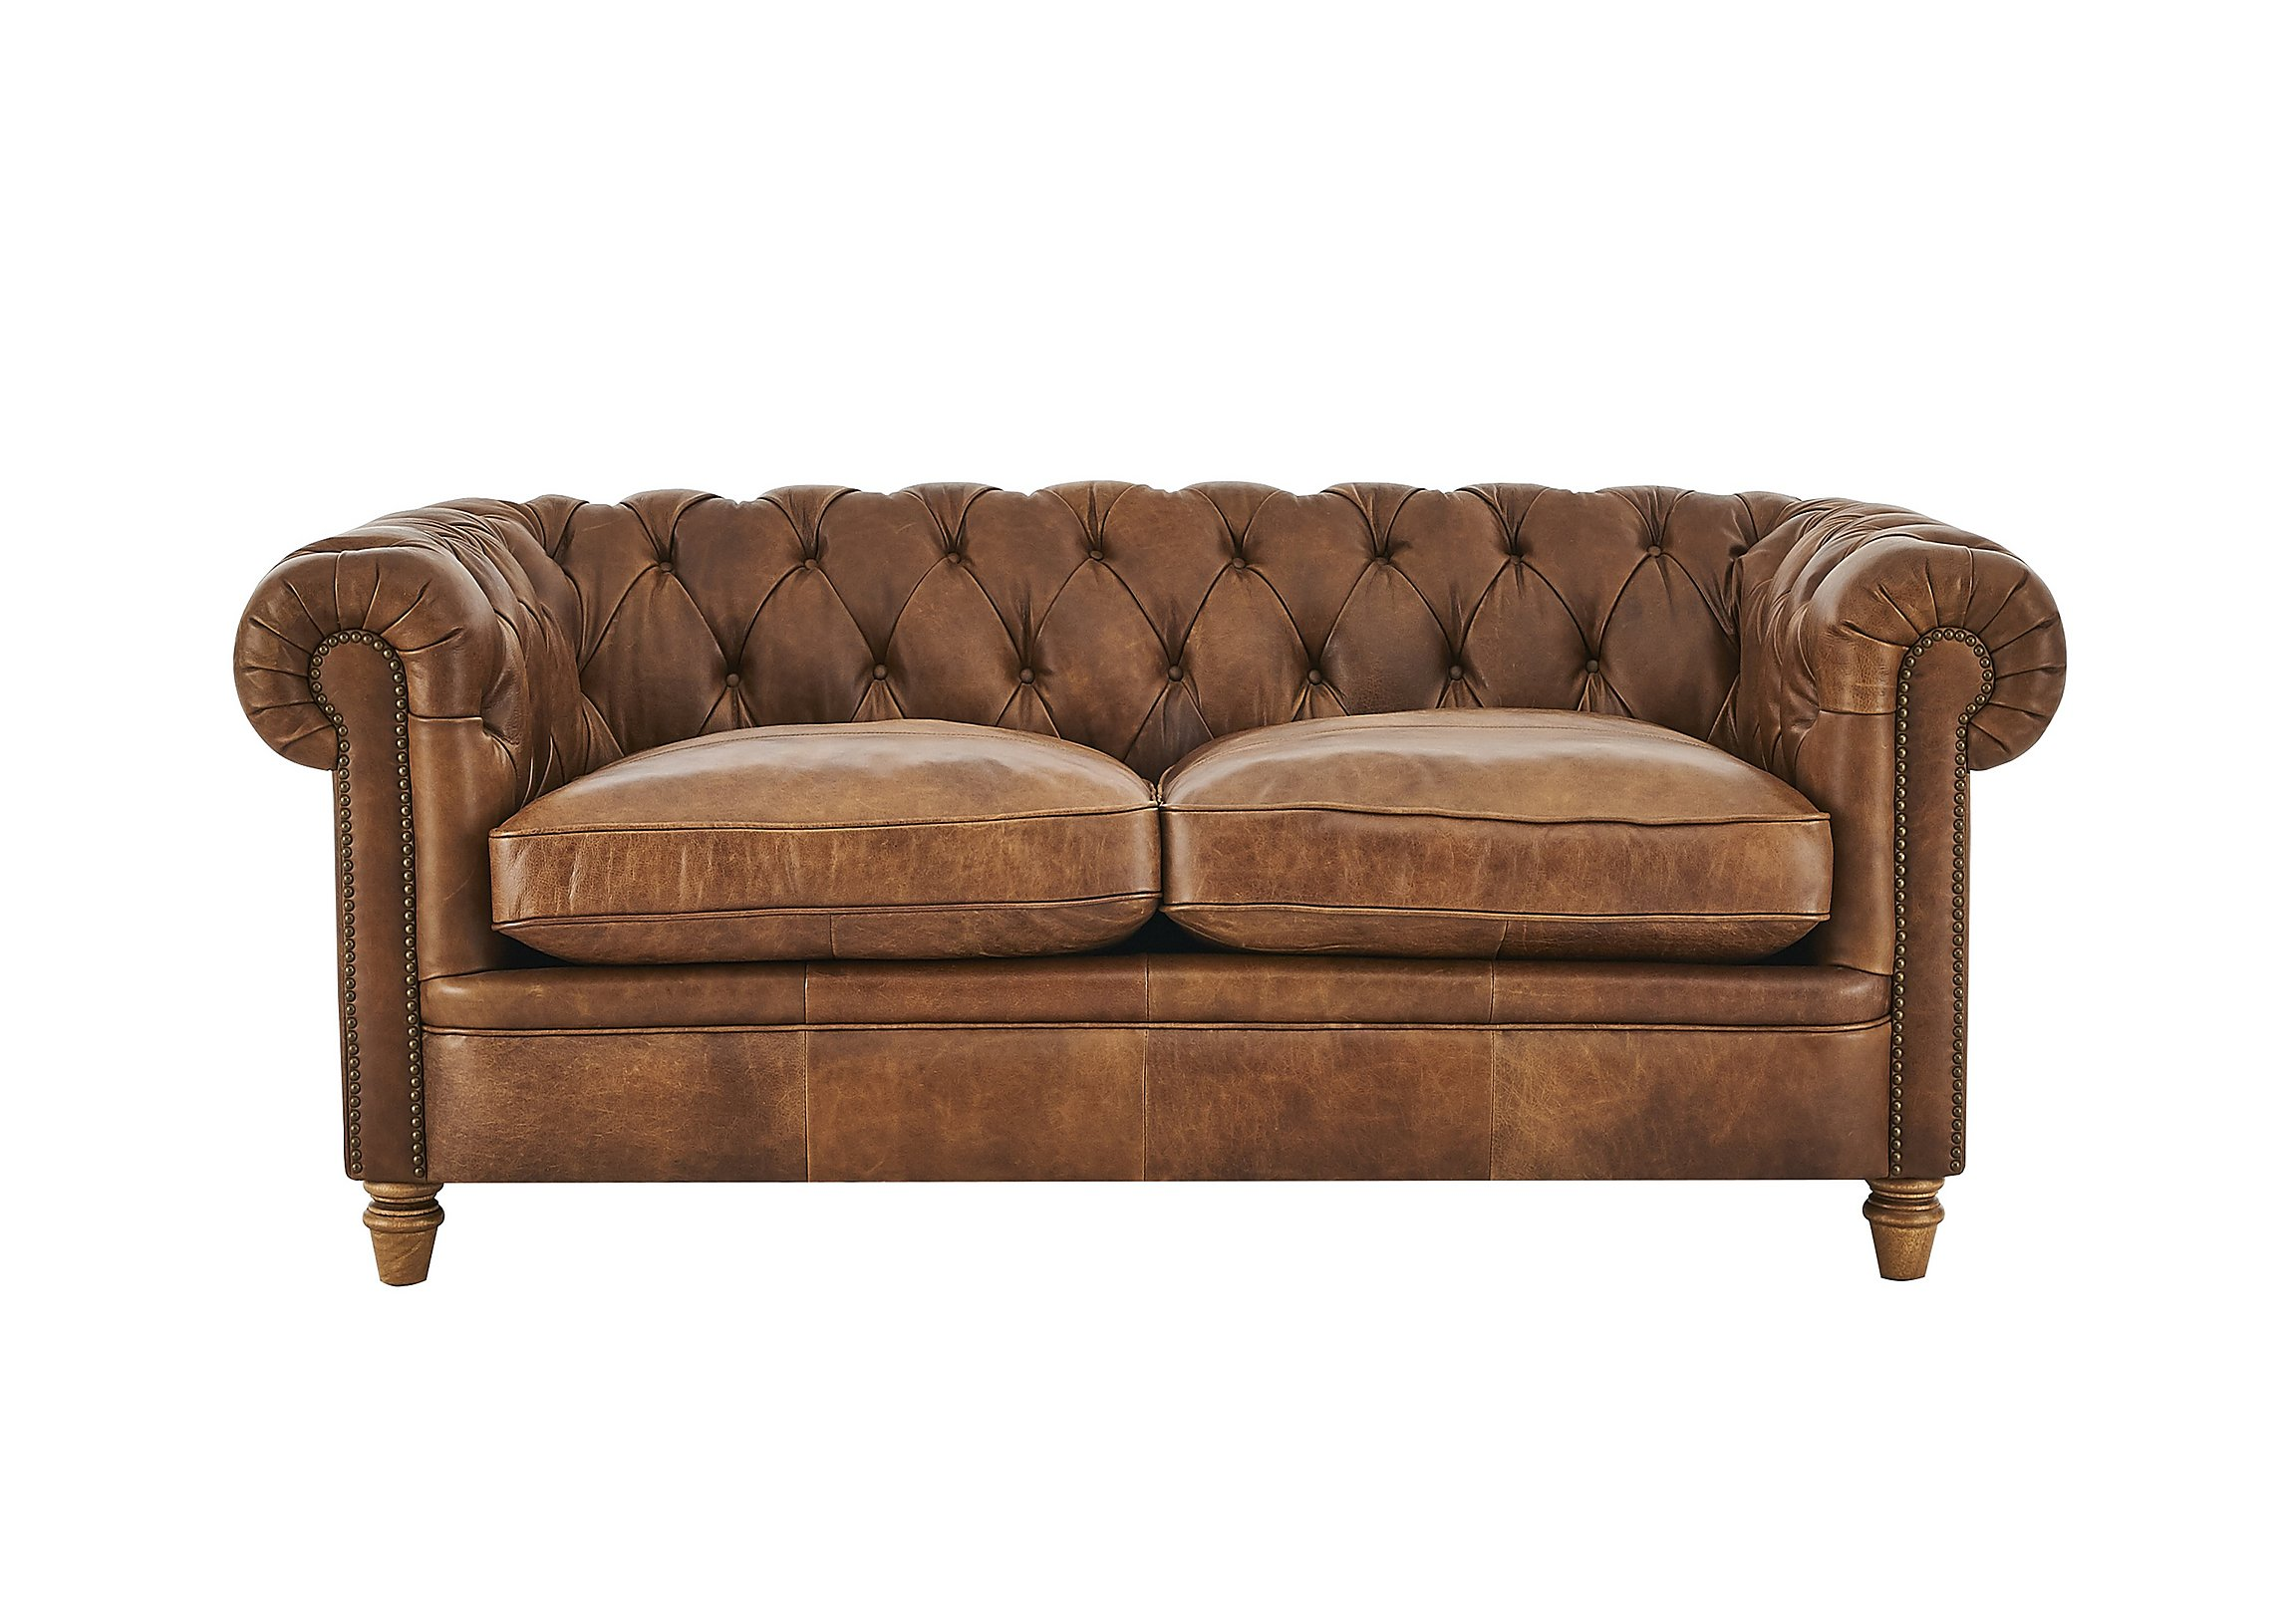 New england newport 2 seater leather sofa alexander and james play parisarafo Choice Image